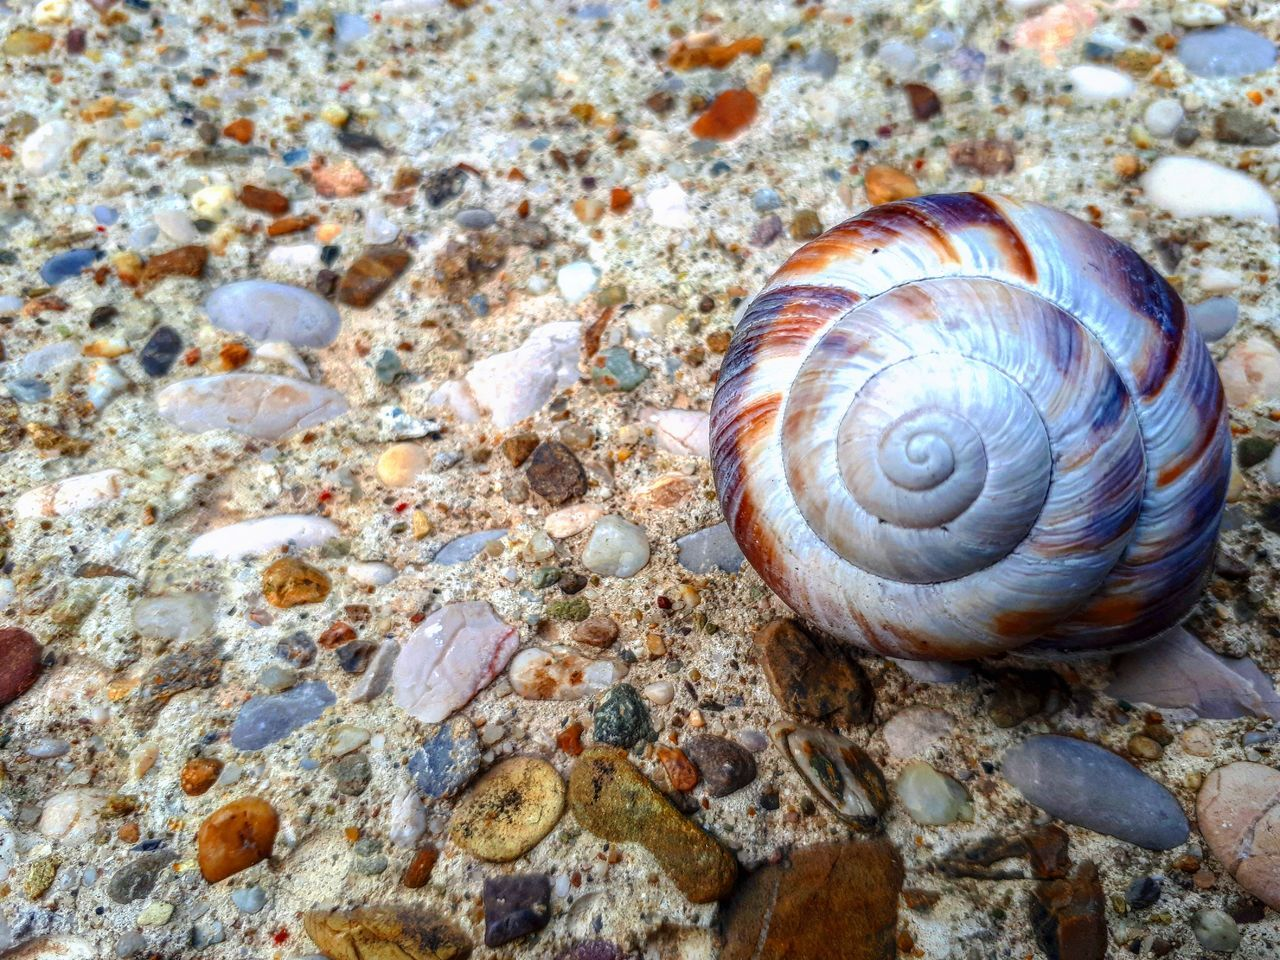 animal shell, snail, animal themes, one animal, animals in the wild, gastropod, wildlife, nature, close-up, day, no people, outdoors, seashell, beach, sea life, sand, sea, fragility, beauty in nature